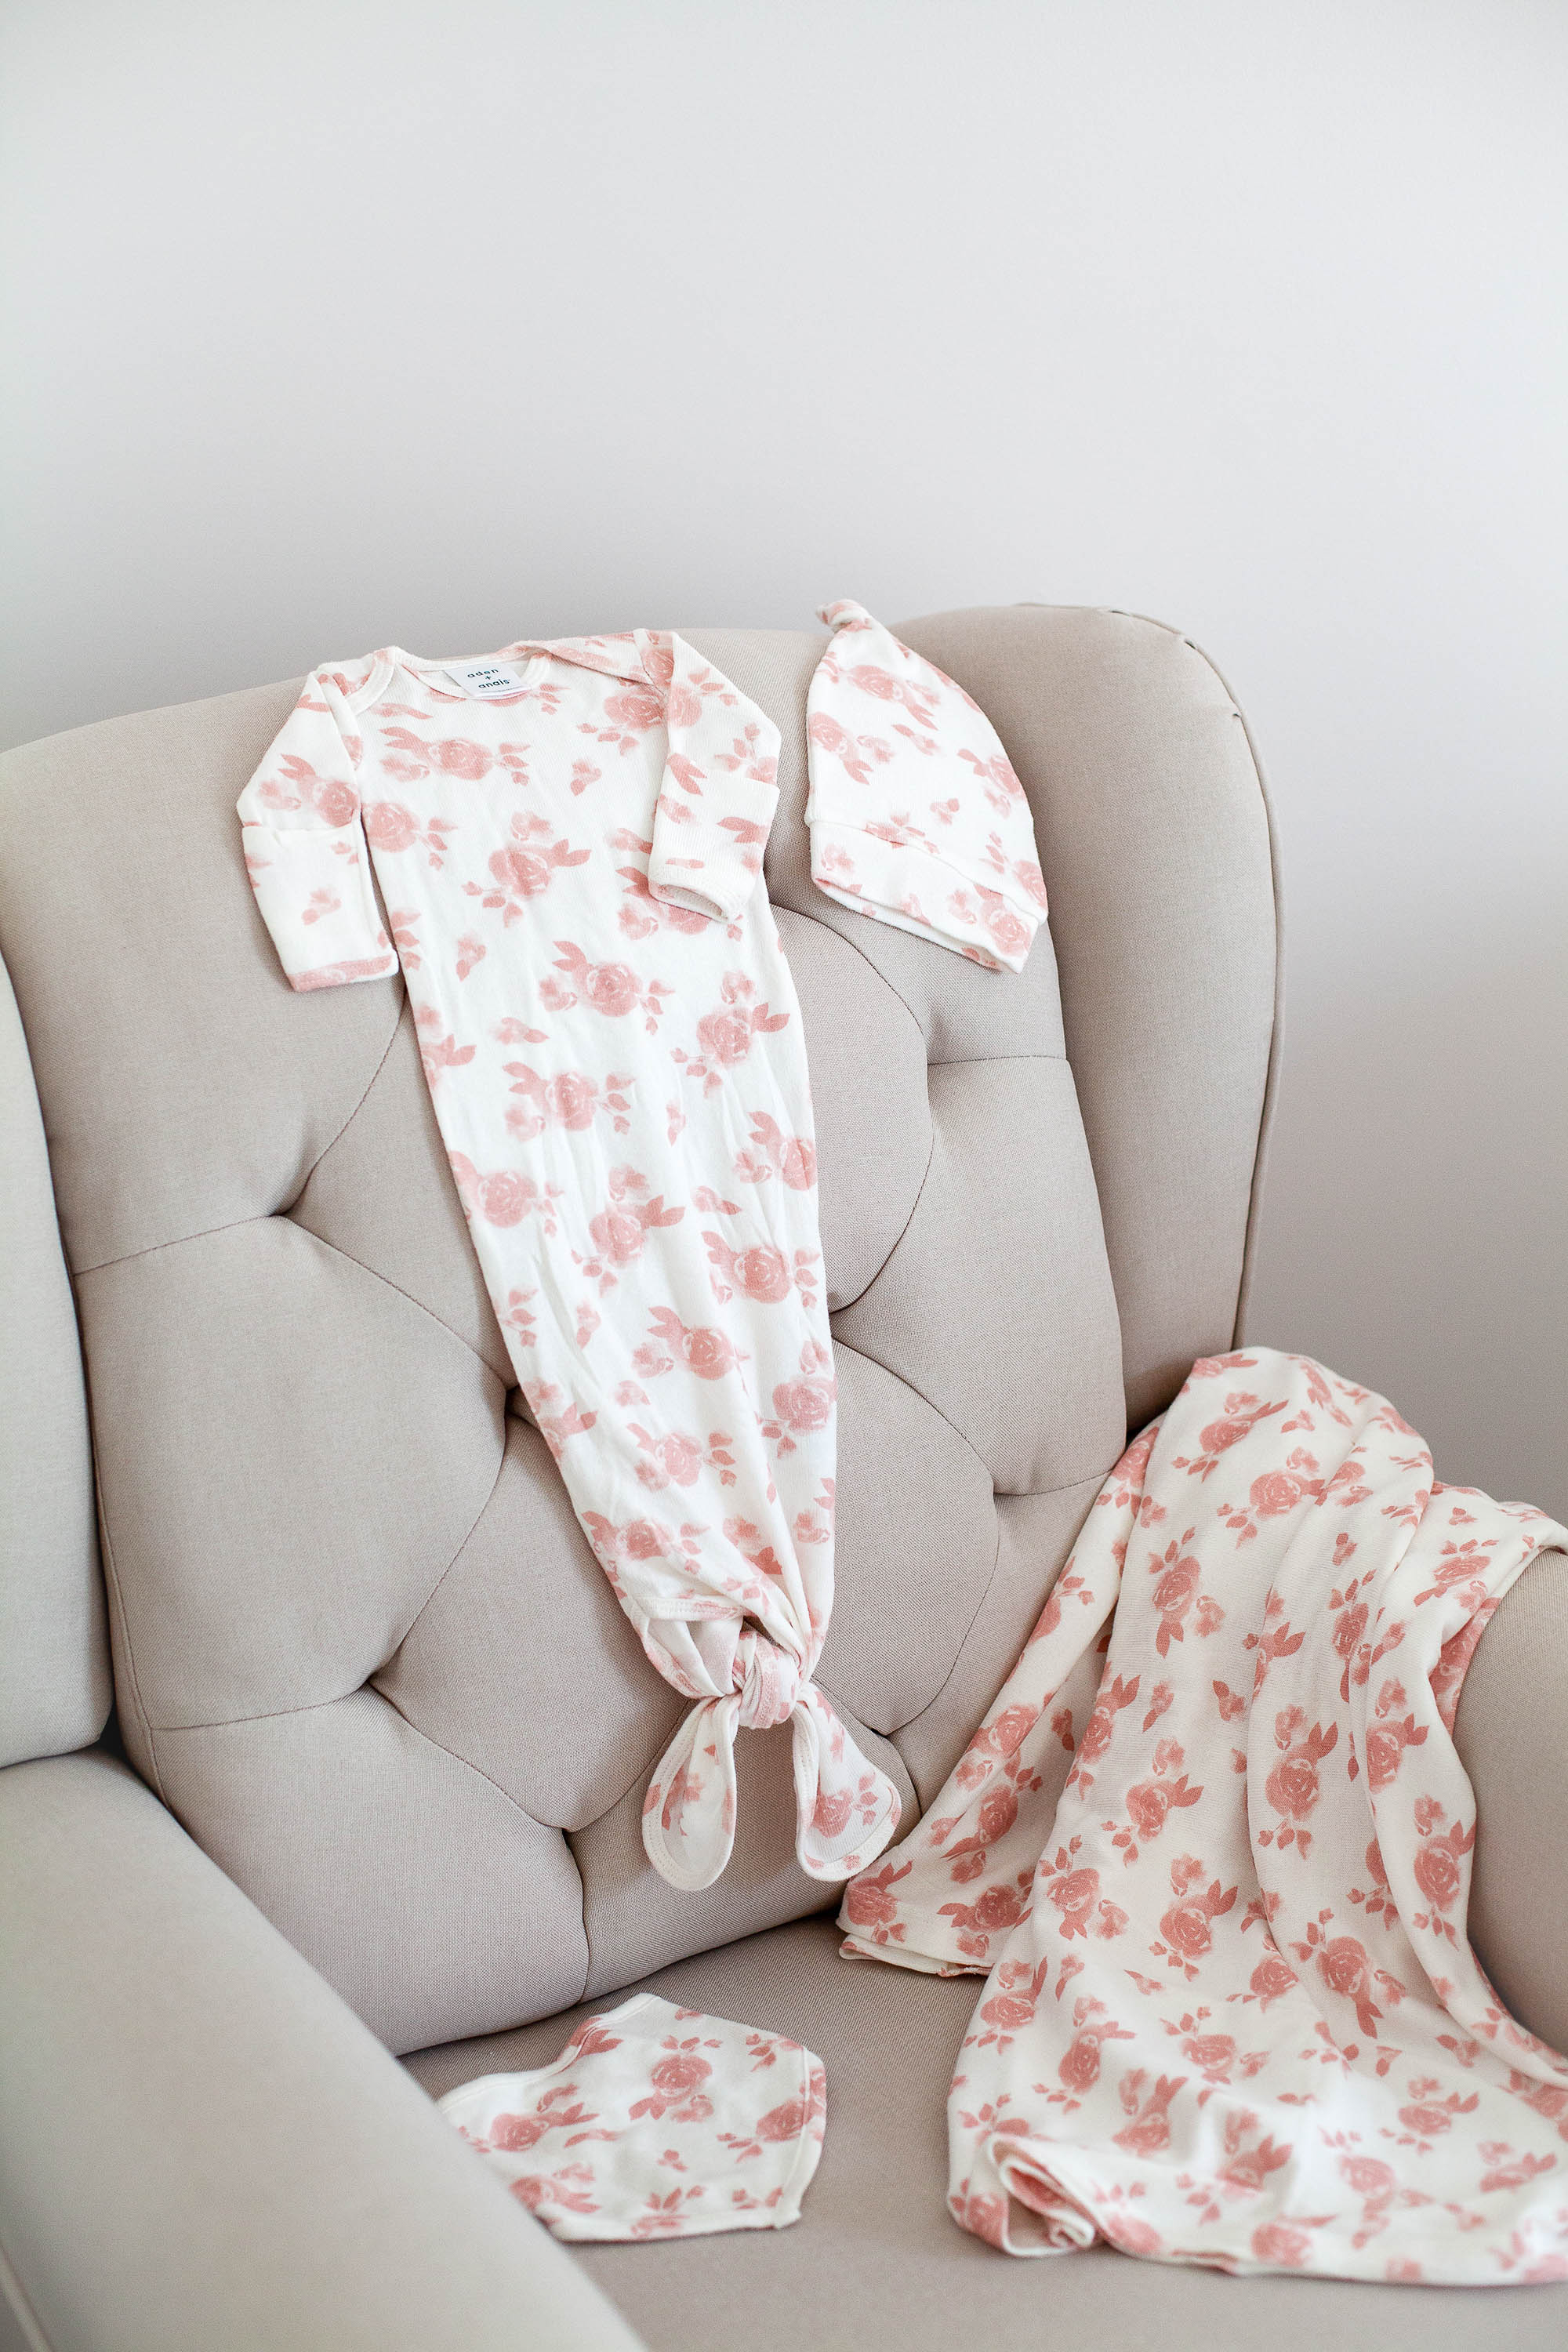 Snuggle Knit Collection from aden + anais